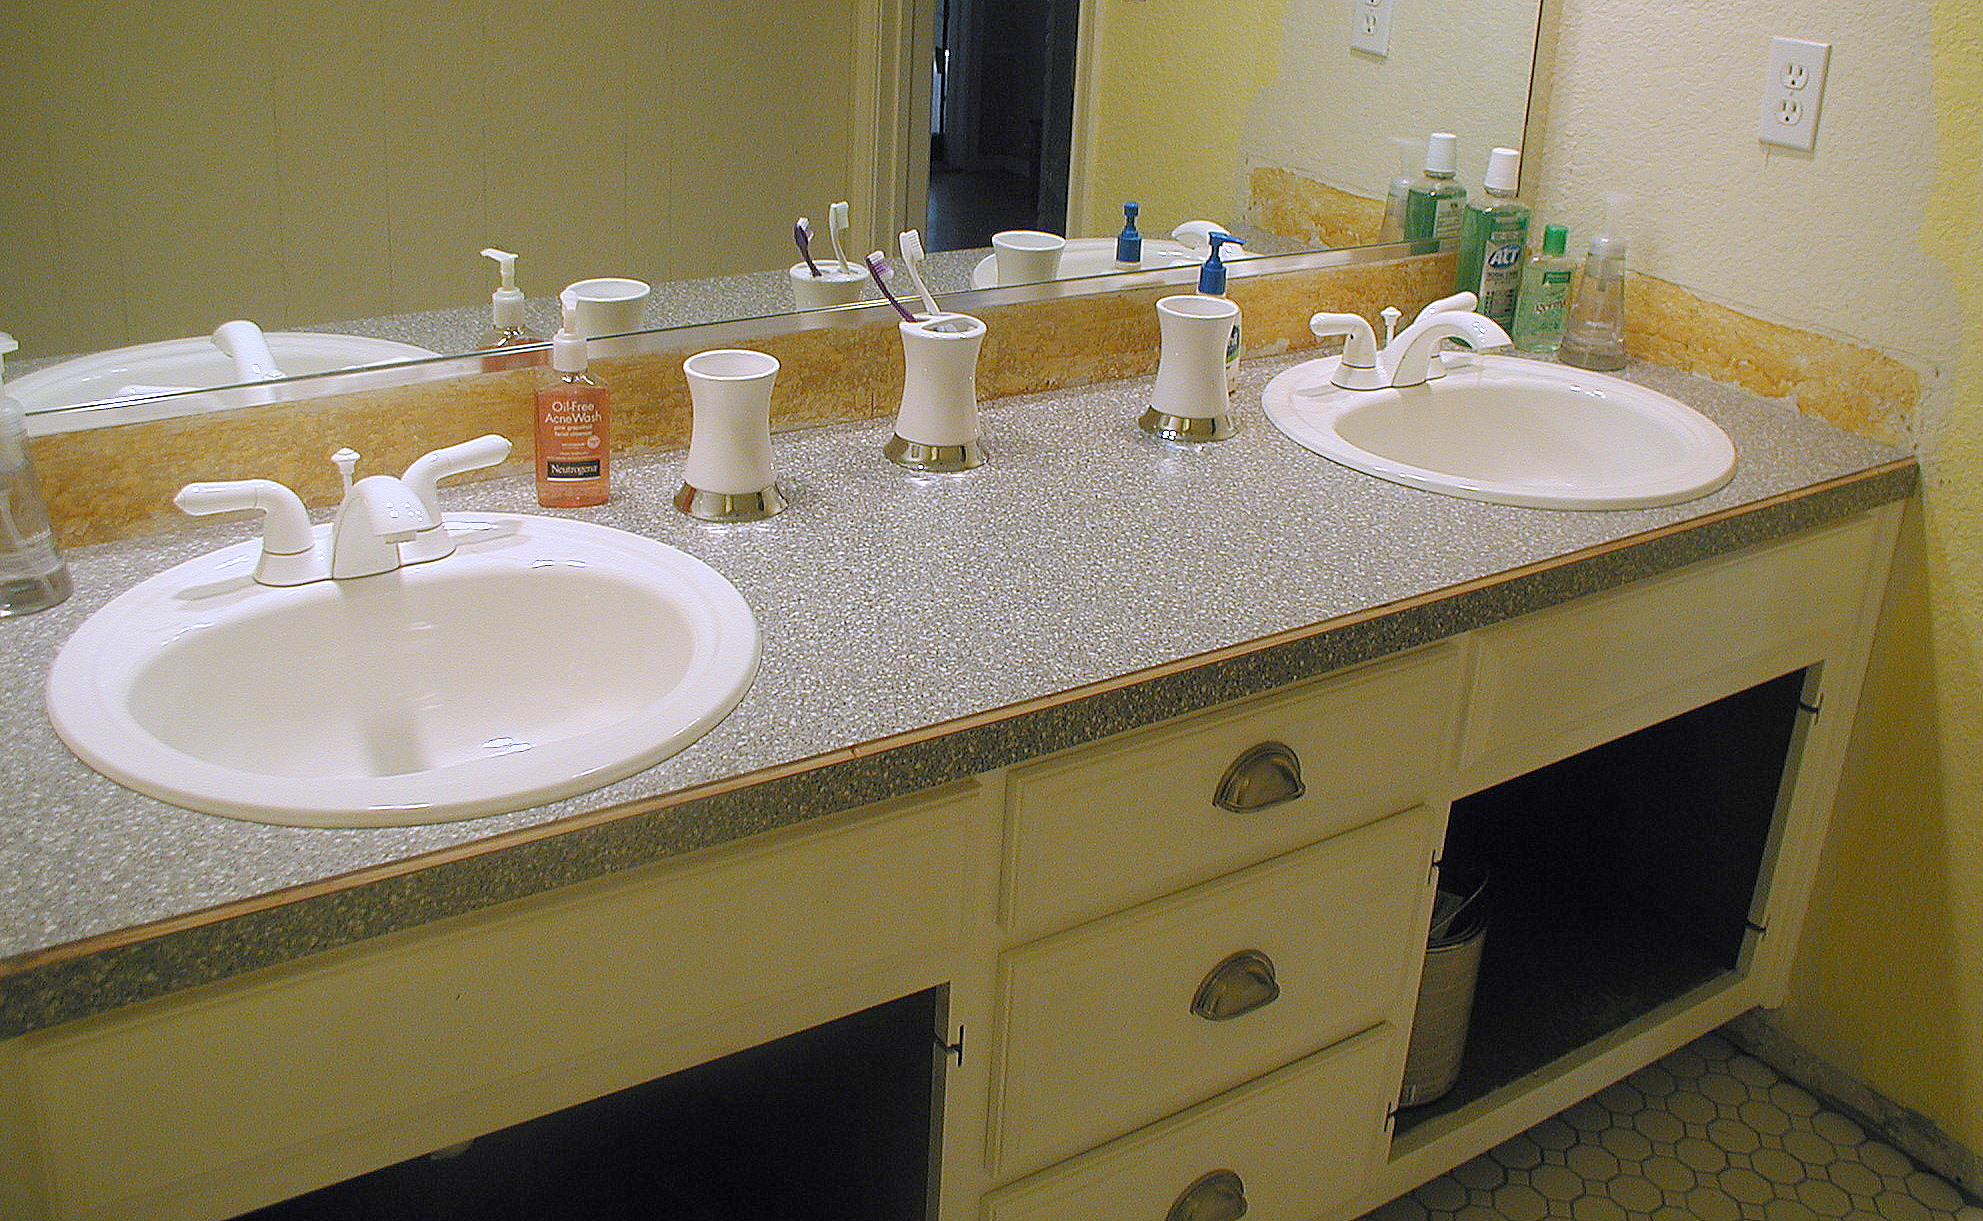 Project Bathroom Vanity With Laminate Over Laminate Simply Rooms By Design